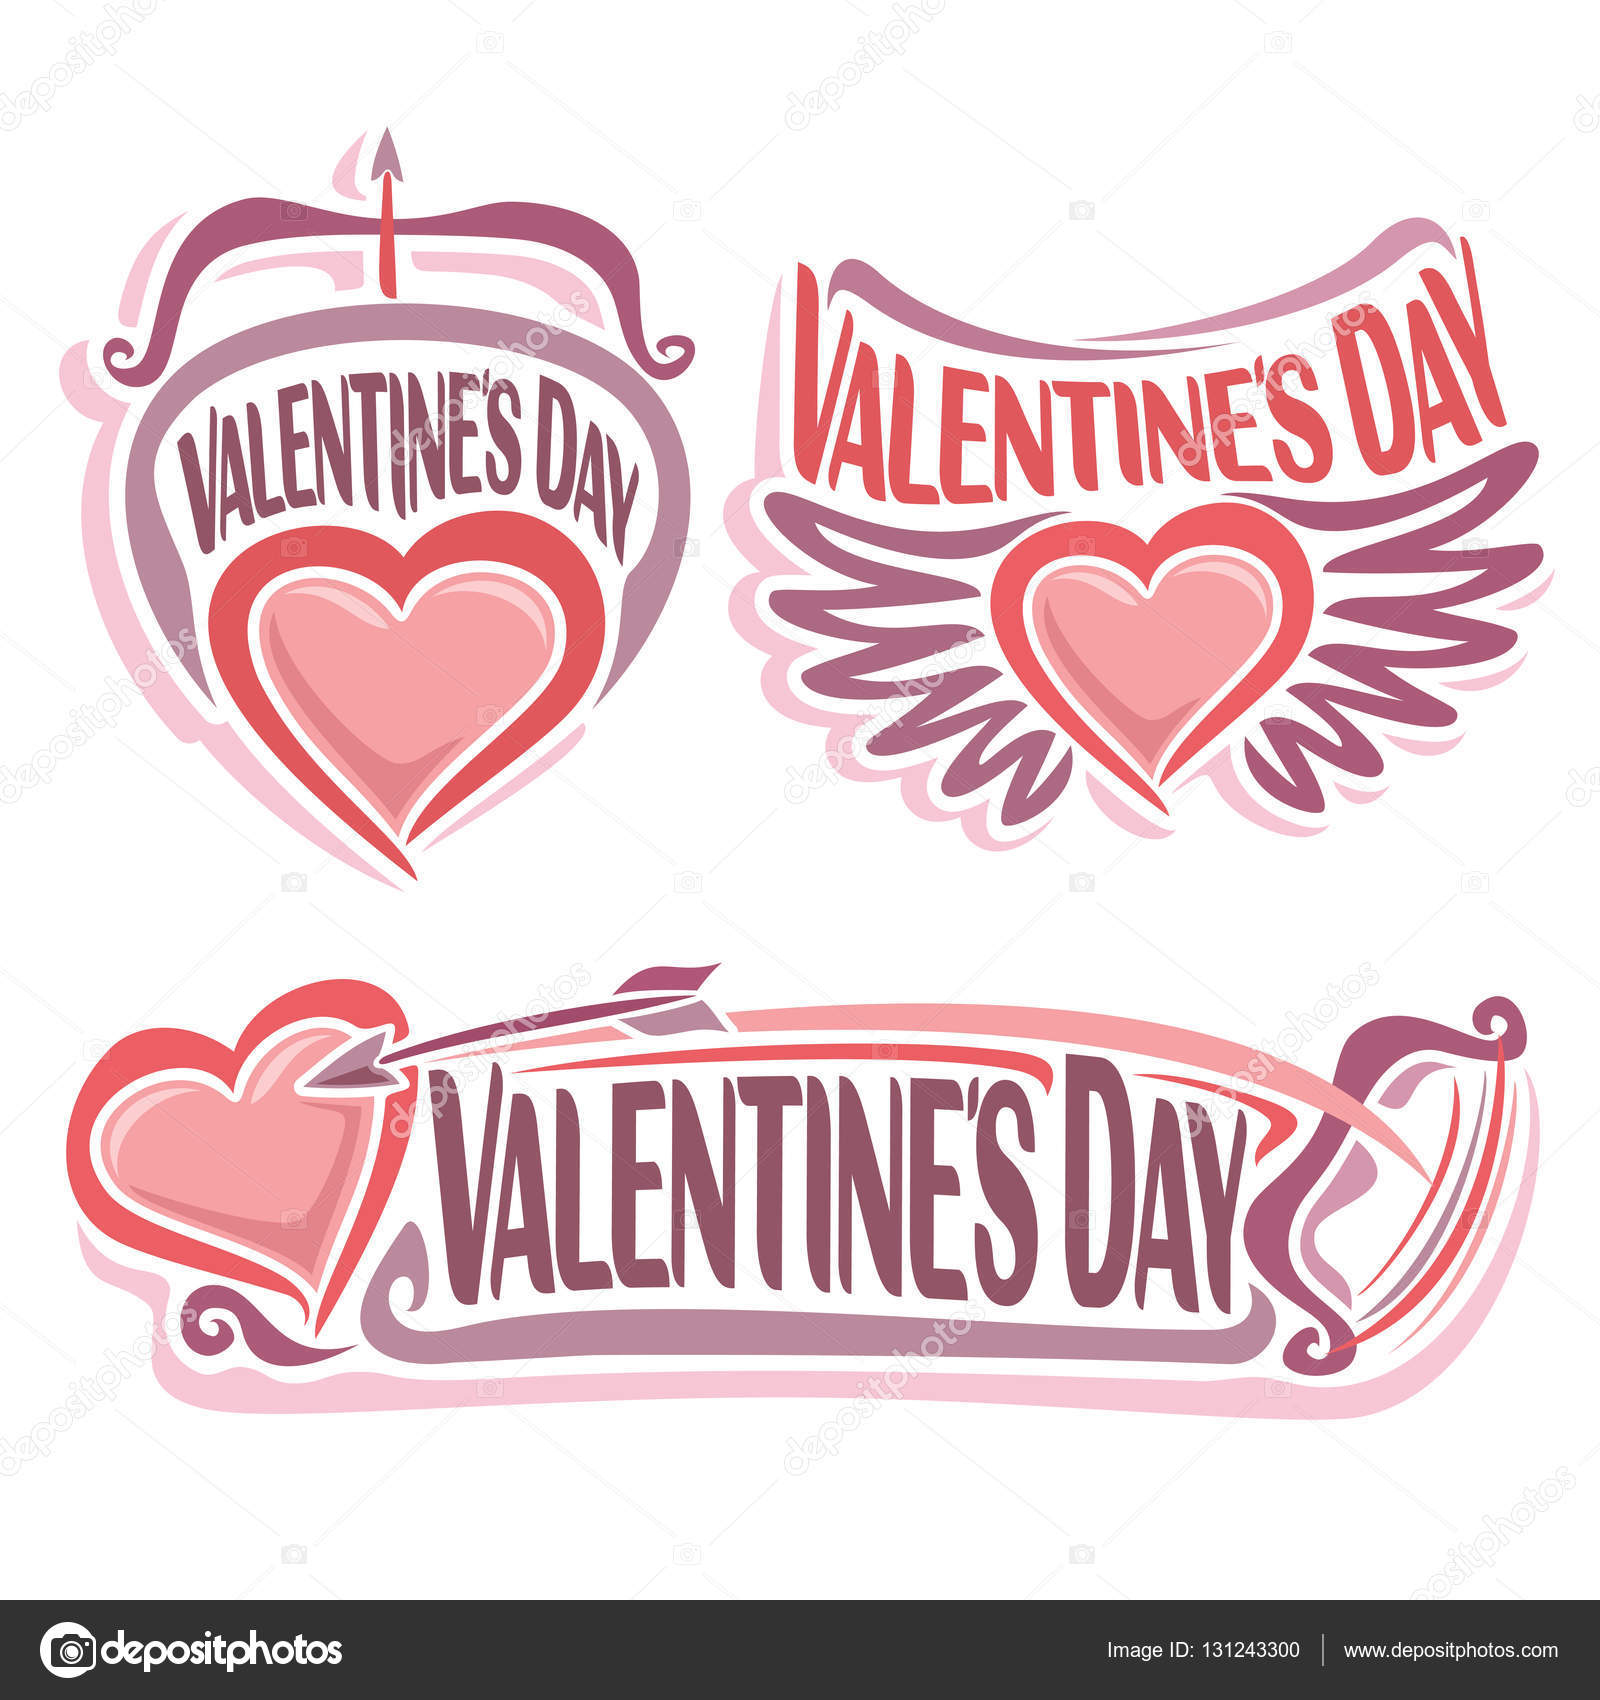 Watch - Logo day Valentines pictures video